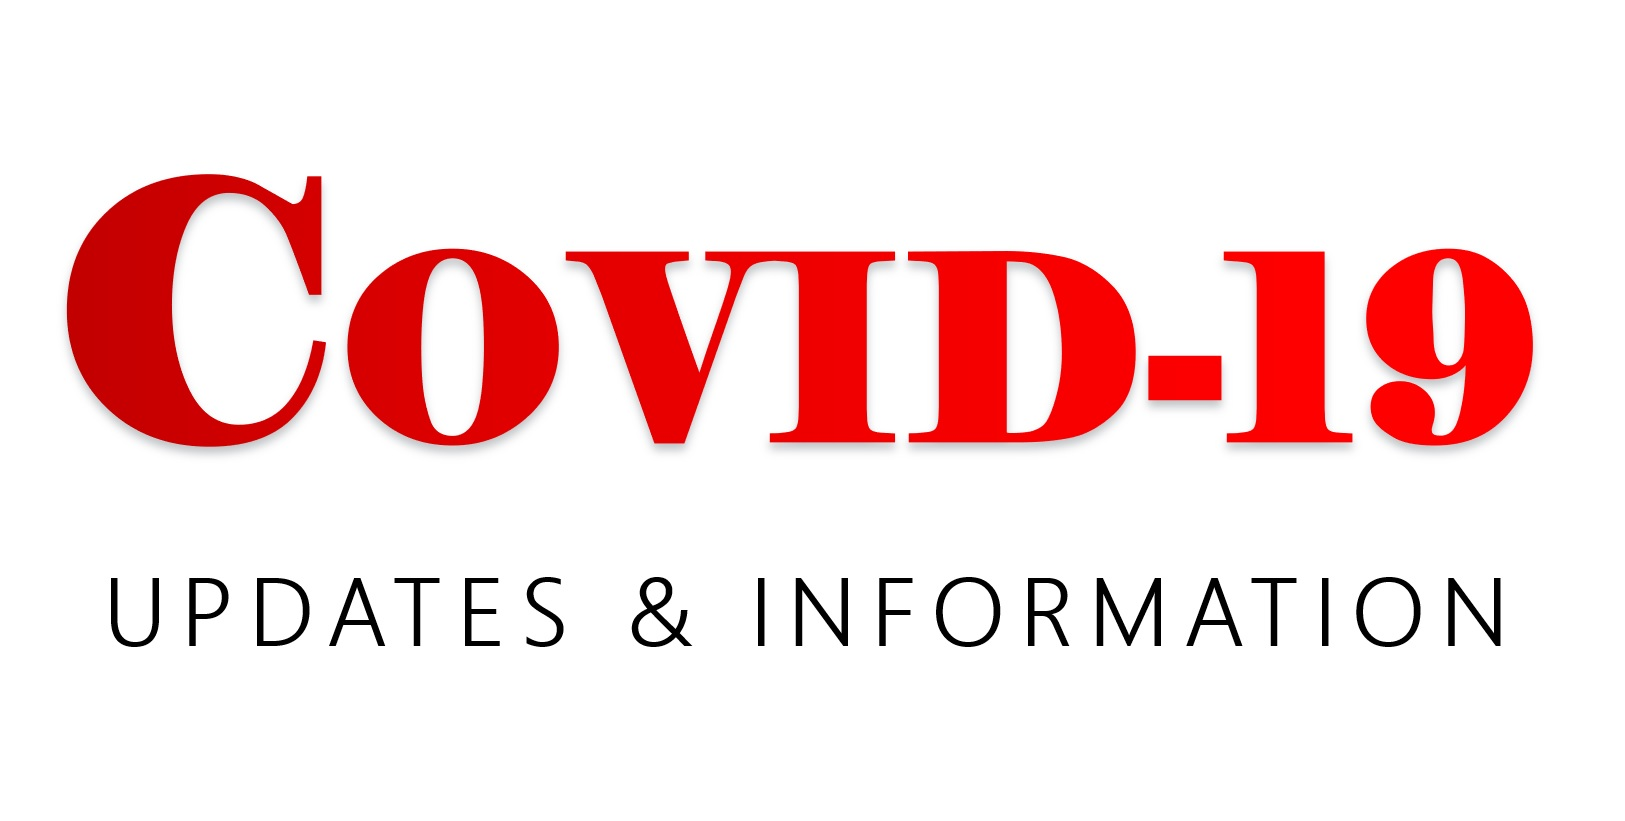 COVID-19 See Latest News & Updates Below